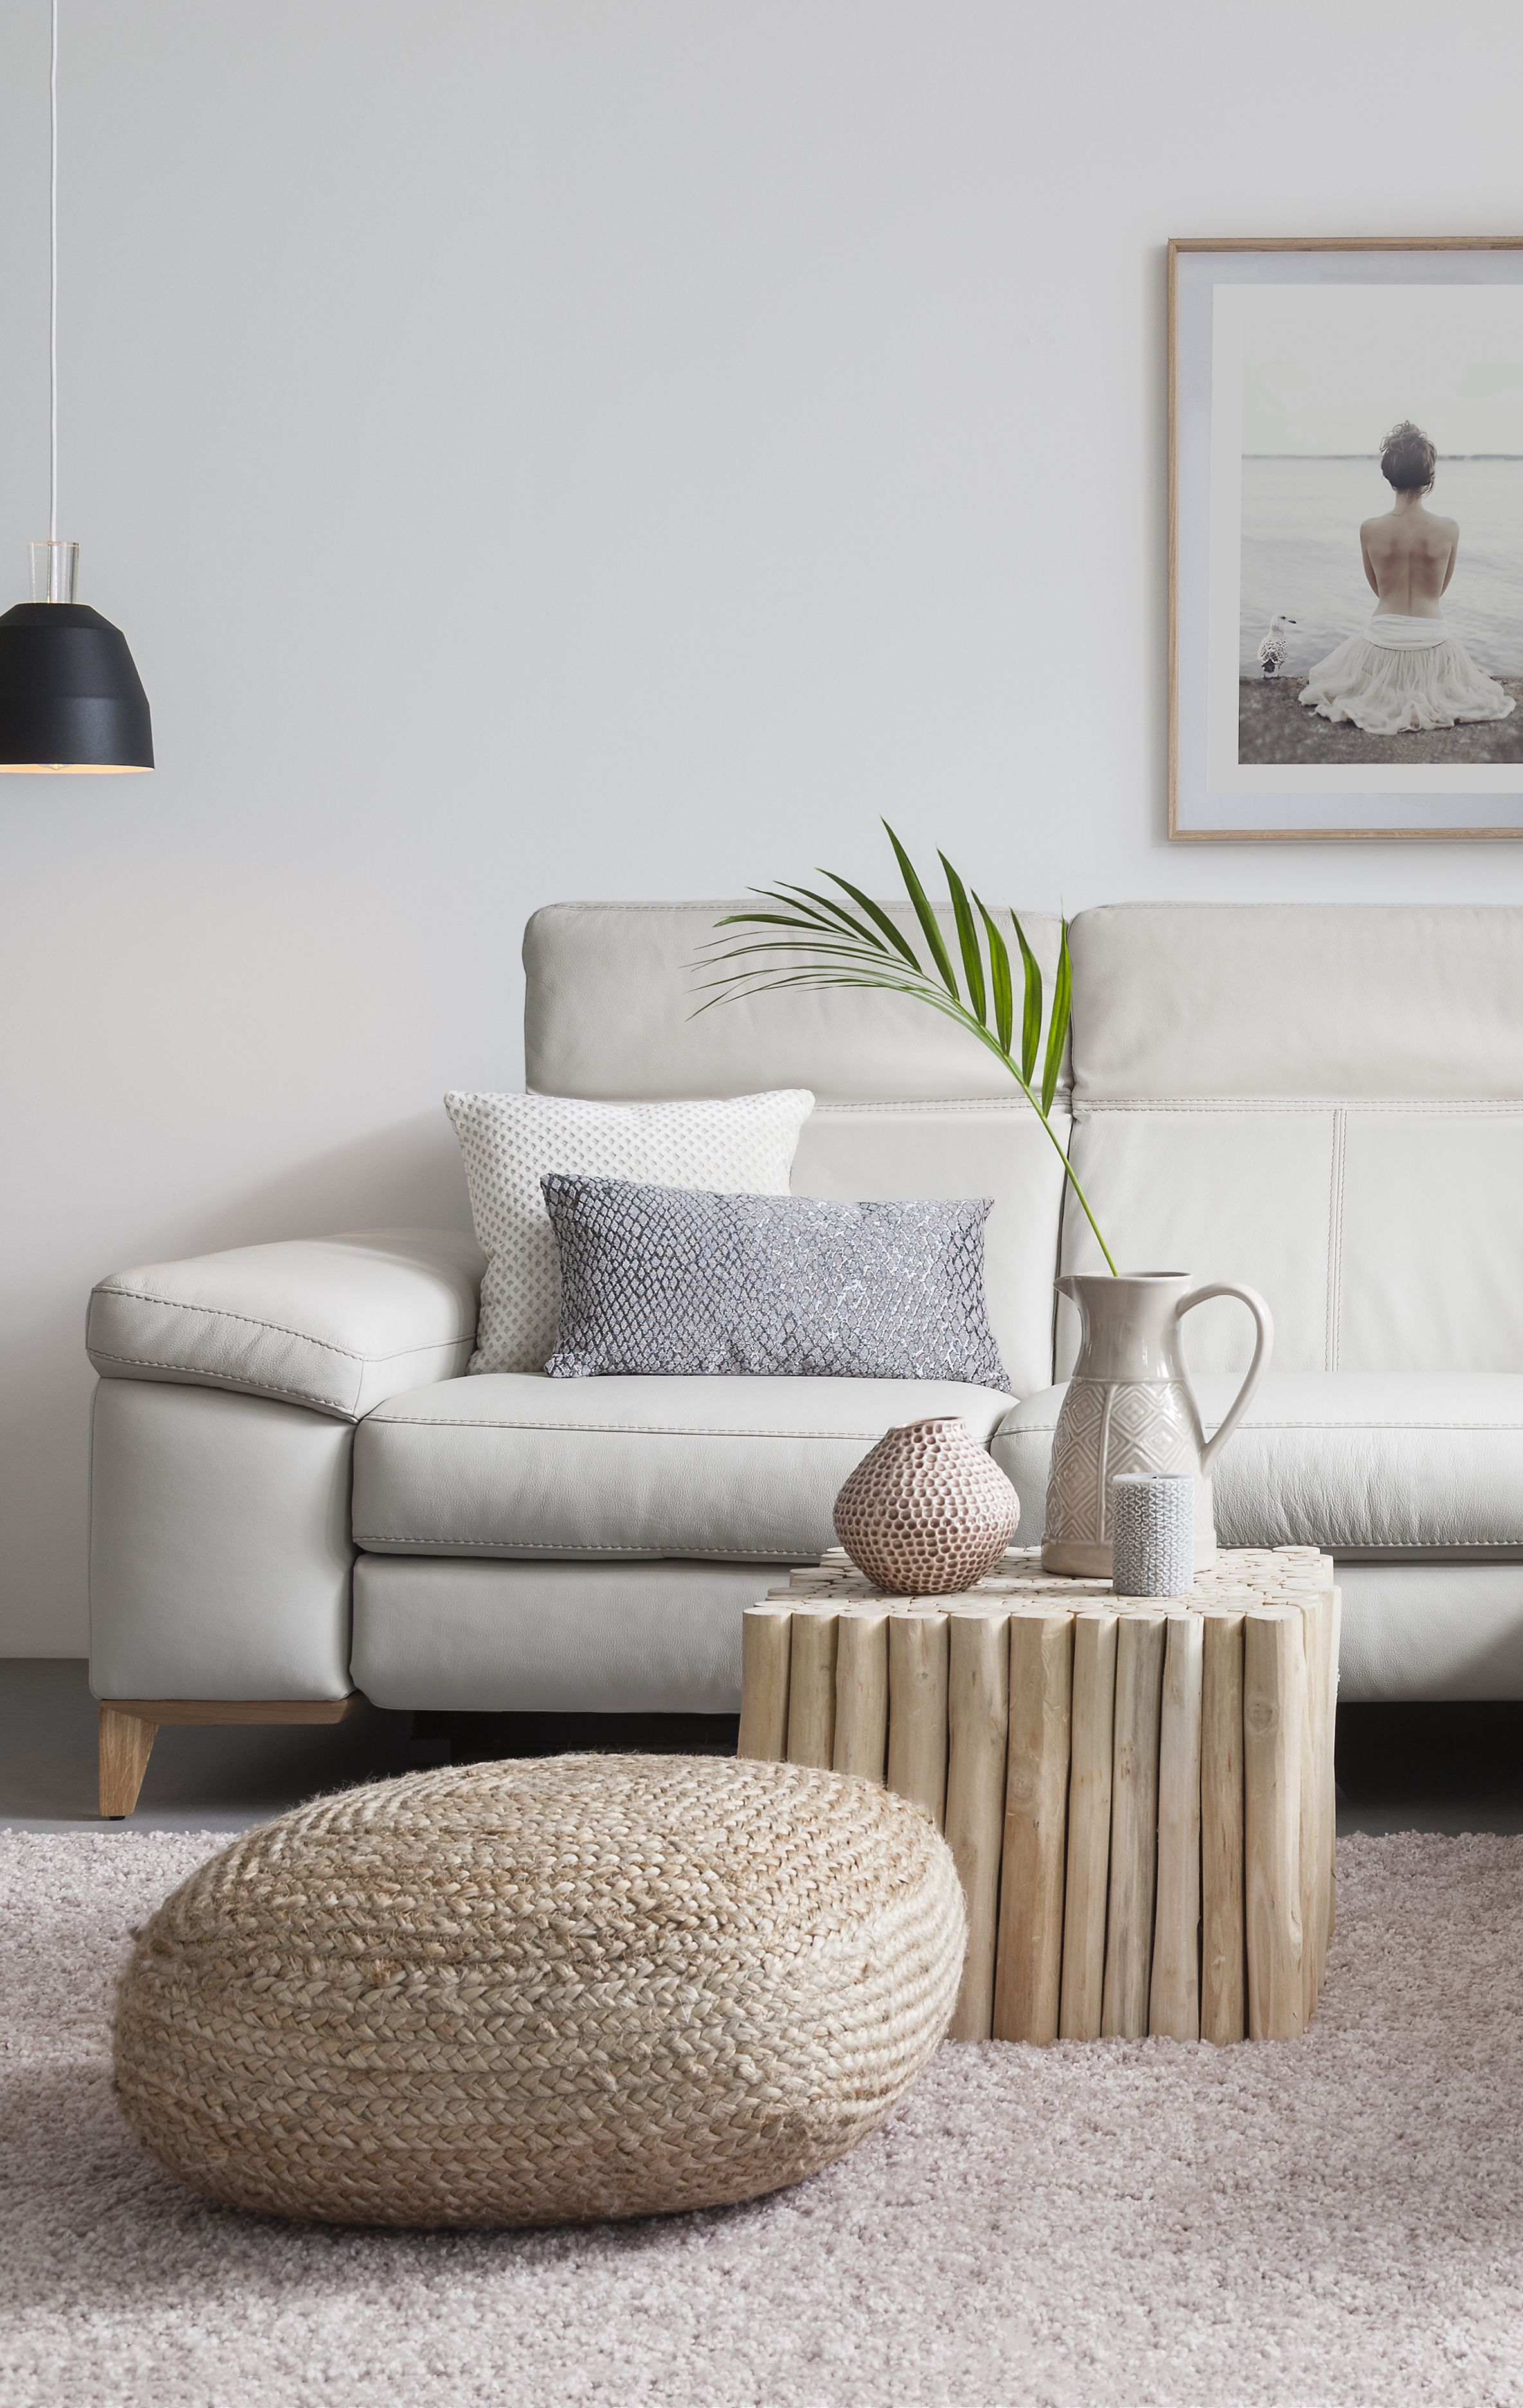 Delivering On Style Size And Comfort Our Made To Measure Cadini Sofa Fits Perfectly Into This Living Room And Is Leather Corner Sofa Sofa Design Luxury Sofa